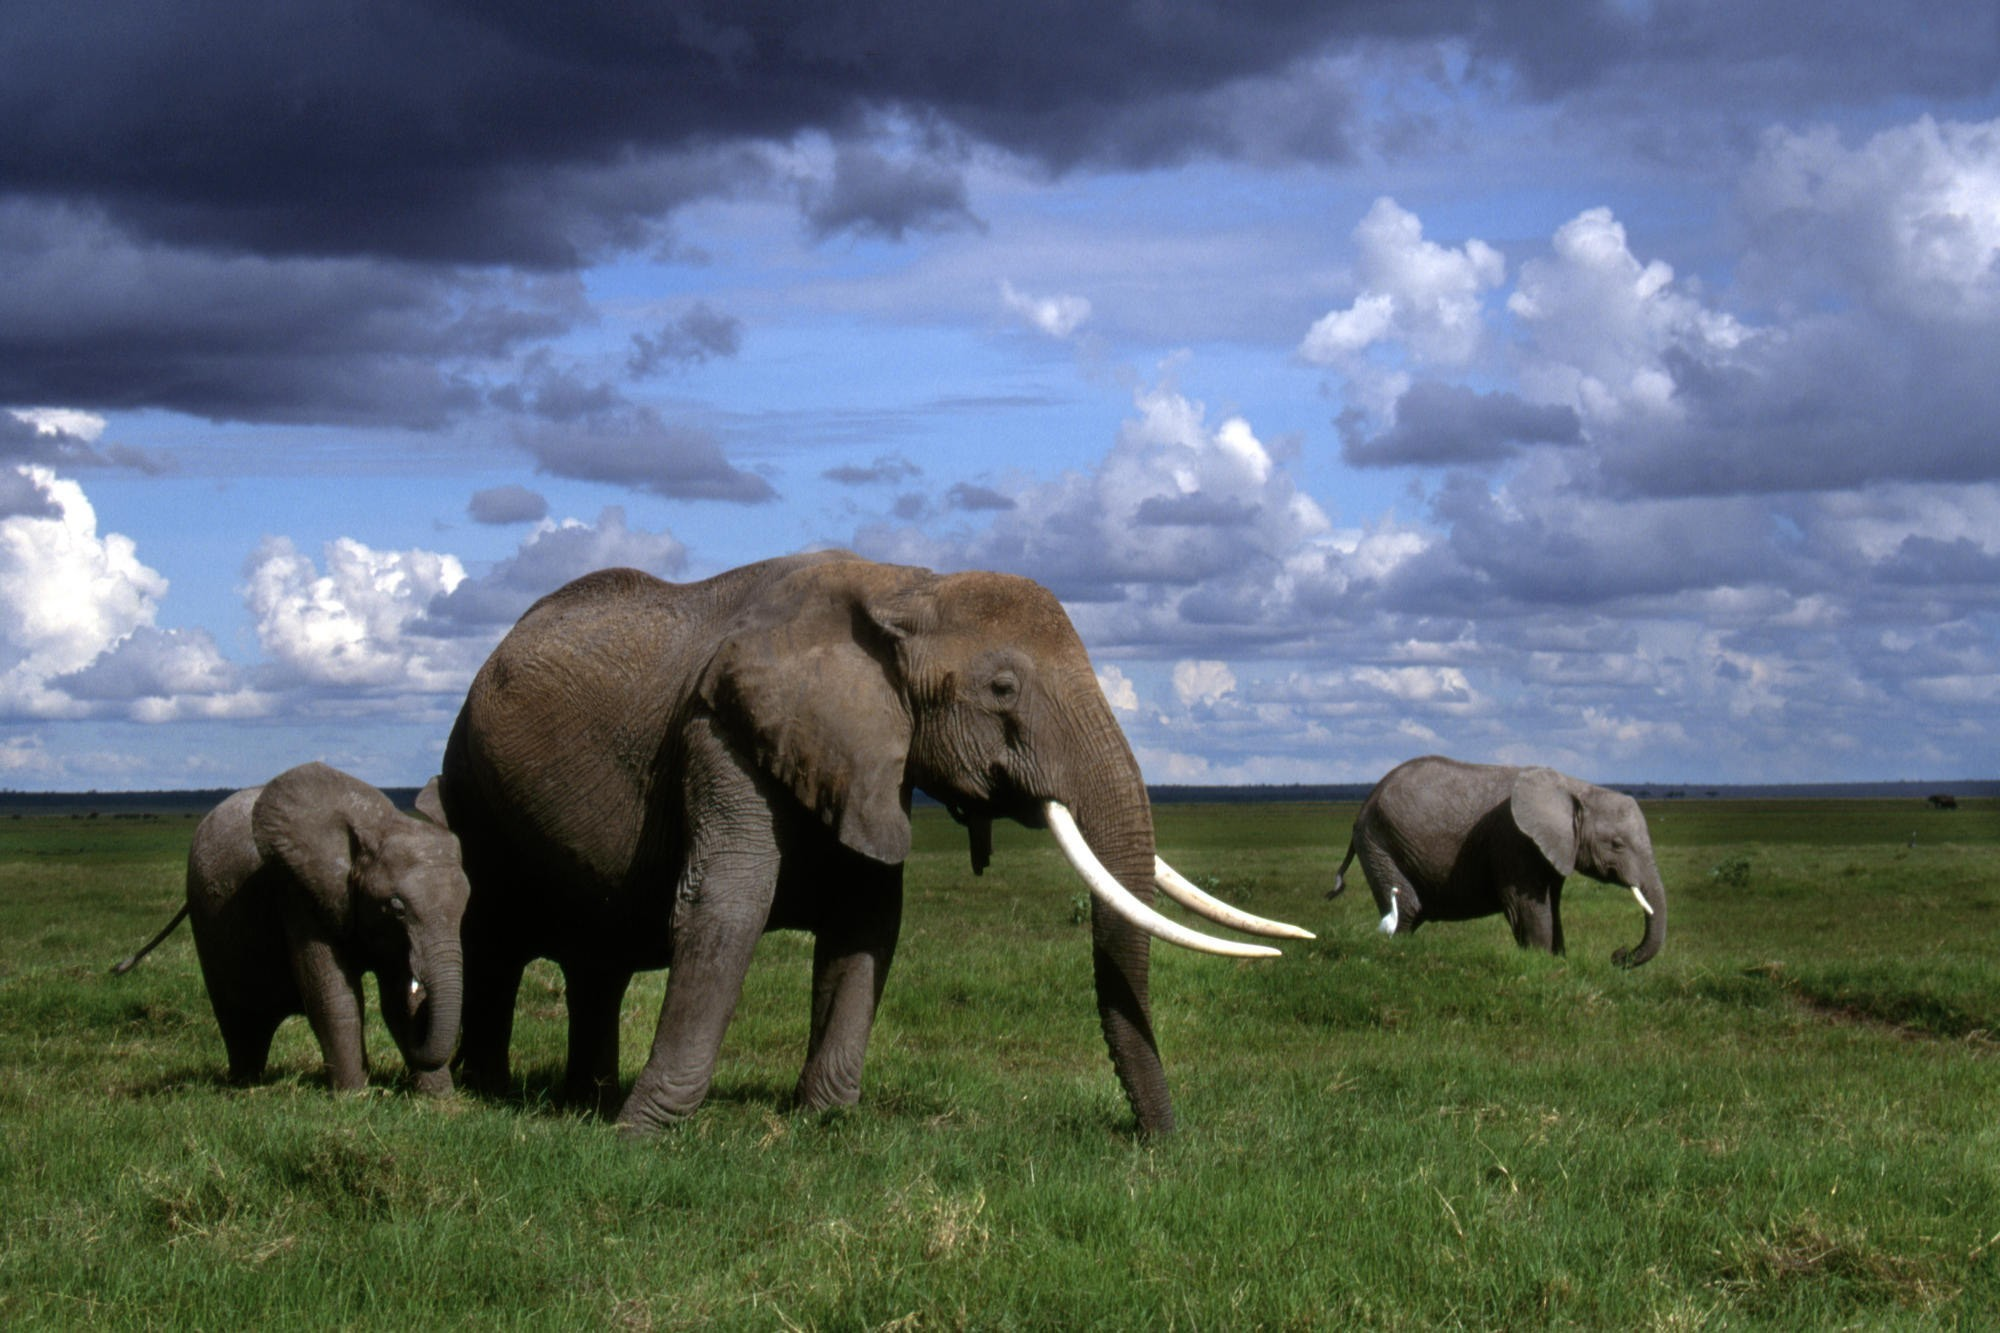 clouds nature Animals elephants HD Wallpaper